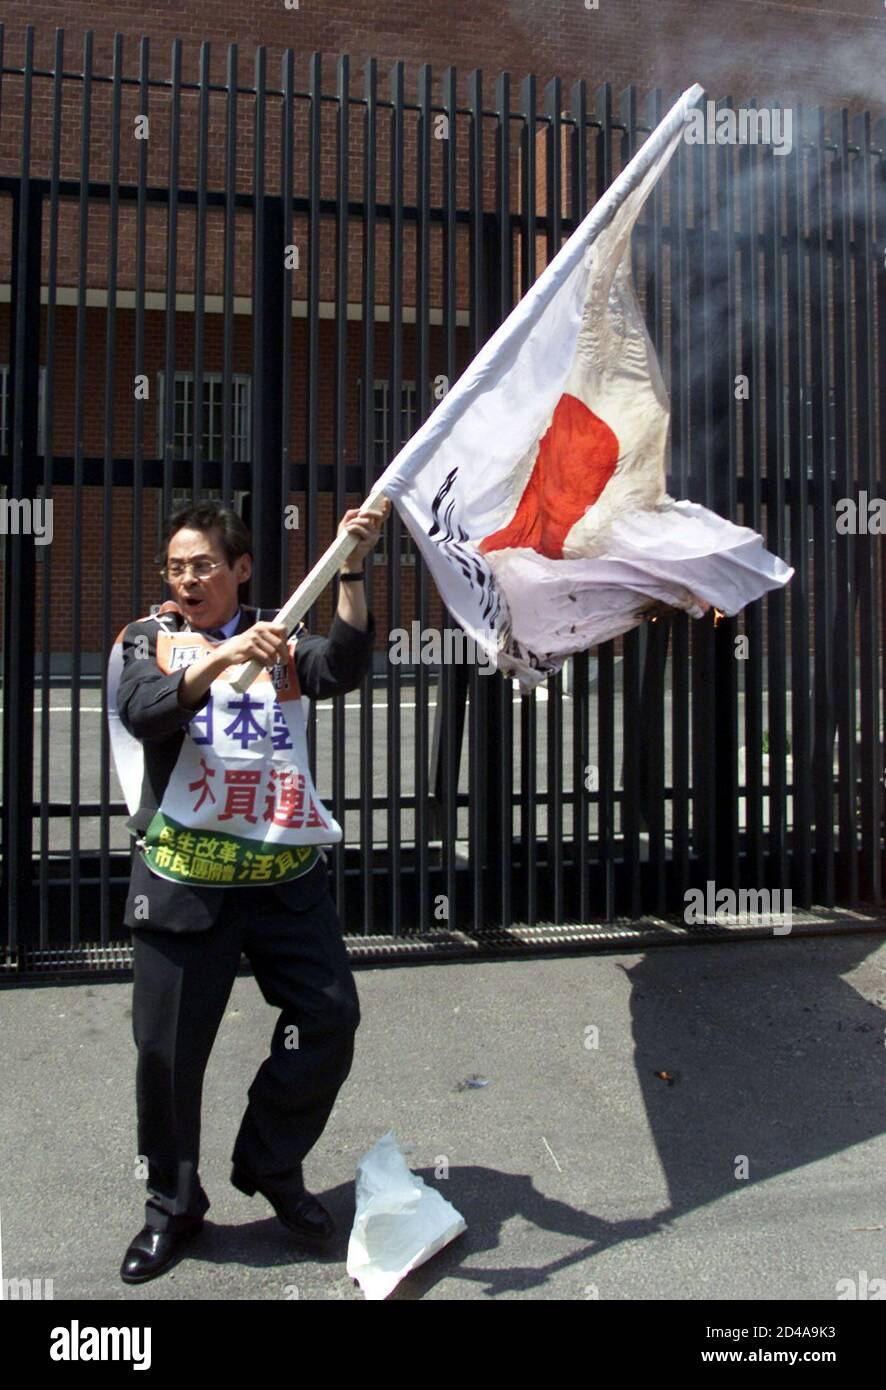 "HOLDING A BURNING JAPANESE NATIONAL FLAG, A SOUTH KOREAN PROTESTER SHOUTS SLOGANS IN FRONT OF JAPANESE EMBASSY IN SEOUL.   Holding a burning Japanese national flag, South Korean protester Hong Jeong-sik shouts anti-Japan slogans in front of the Japanese Embassy in Seoul May 14, 2001. Hong was protesting against controversial middle school history text book of Japan, which critics say justifies Japan's wartime atrocities. The characters on his chest reads, ""Civic campaign to boycott Japanese products"". Stock Photo"